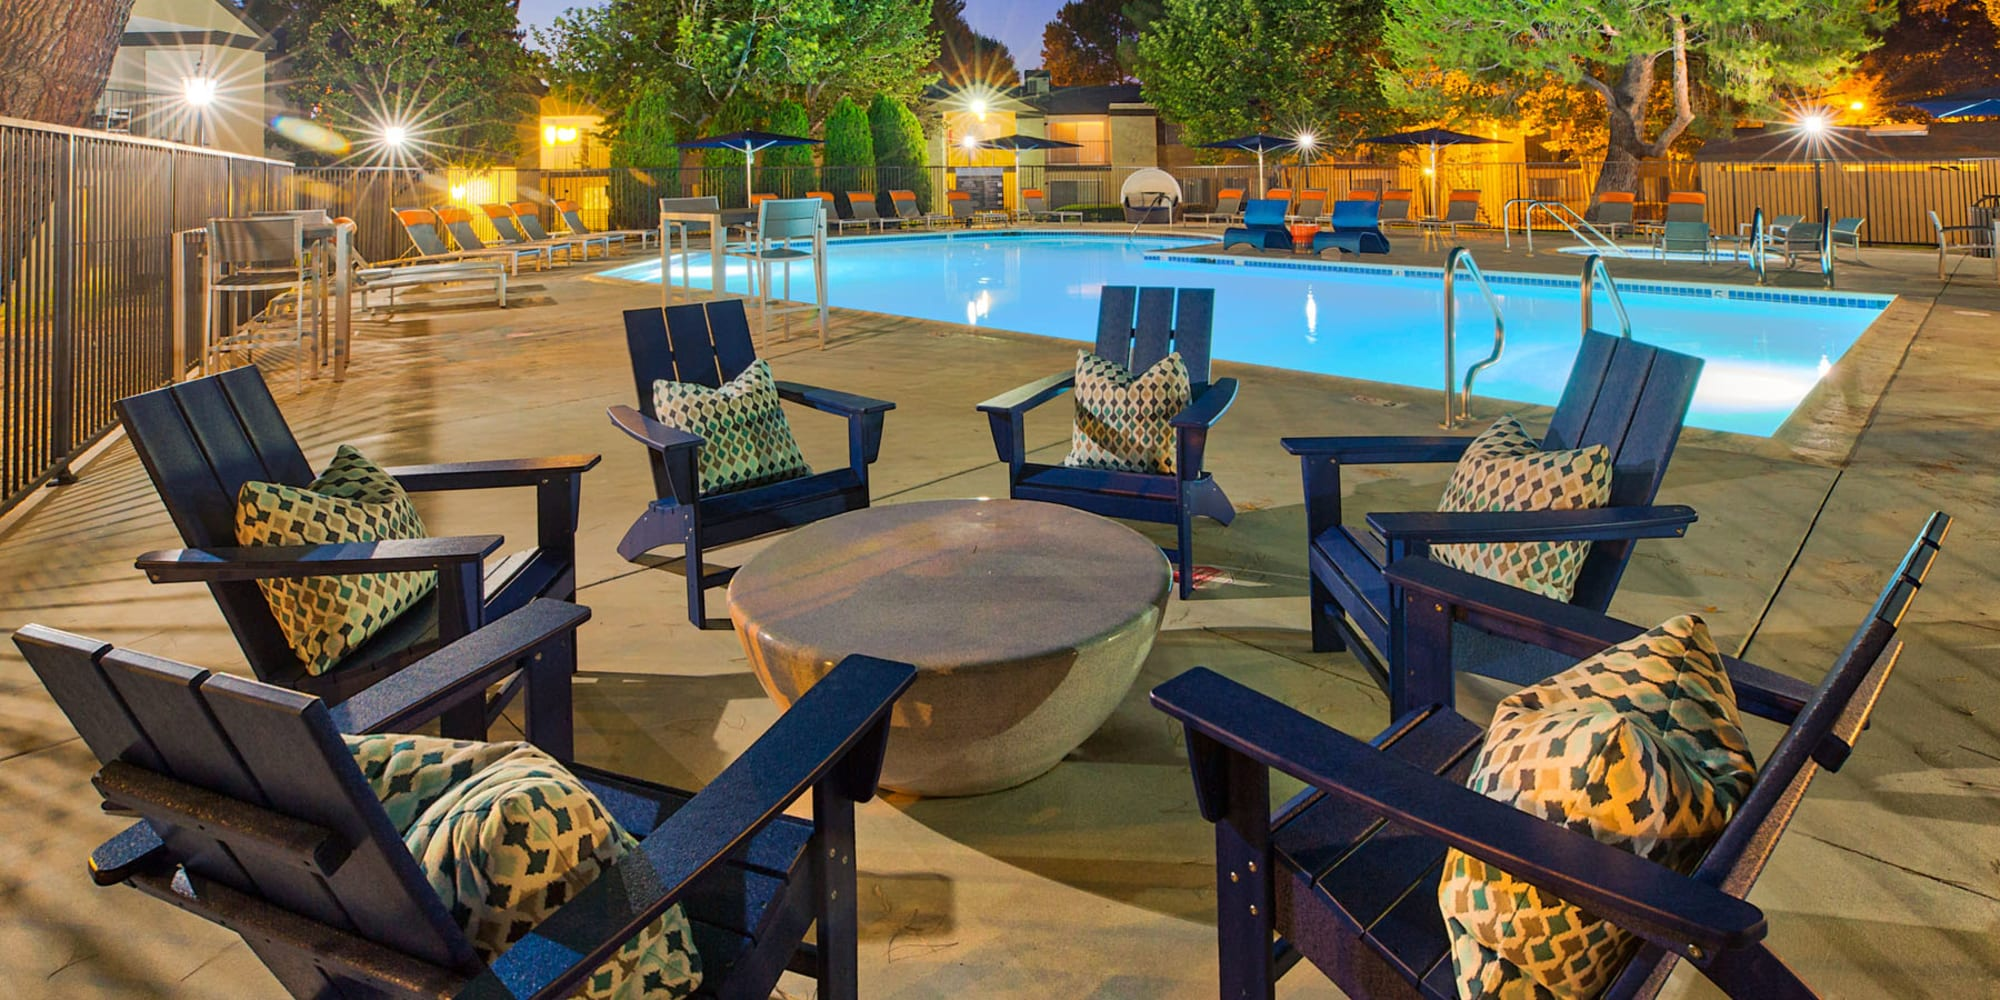 Adirondack lounge chairs around a drink table near the swimming pool at dusk at Mountain Vista in Victorville, California